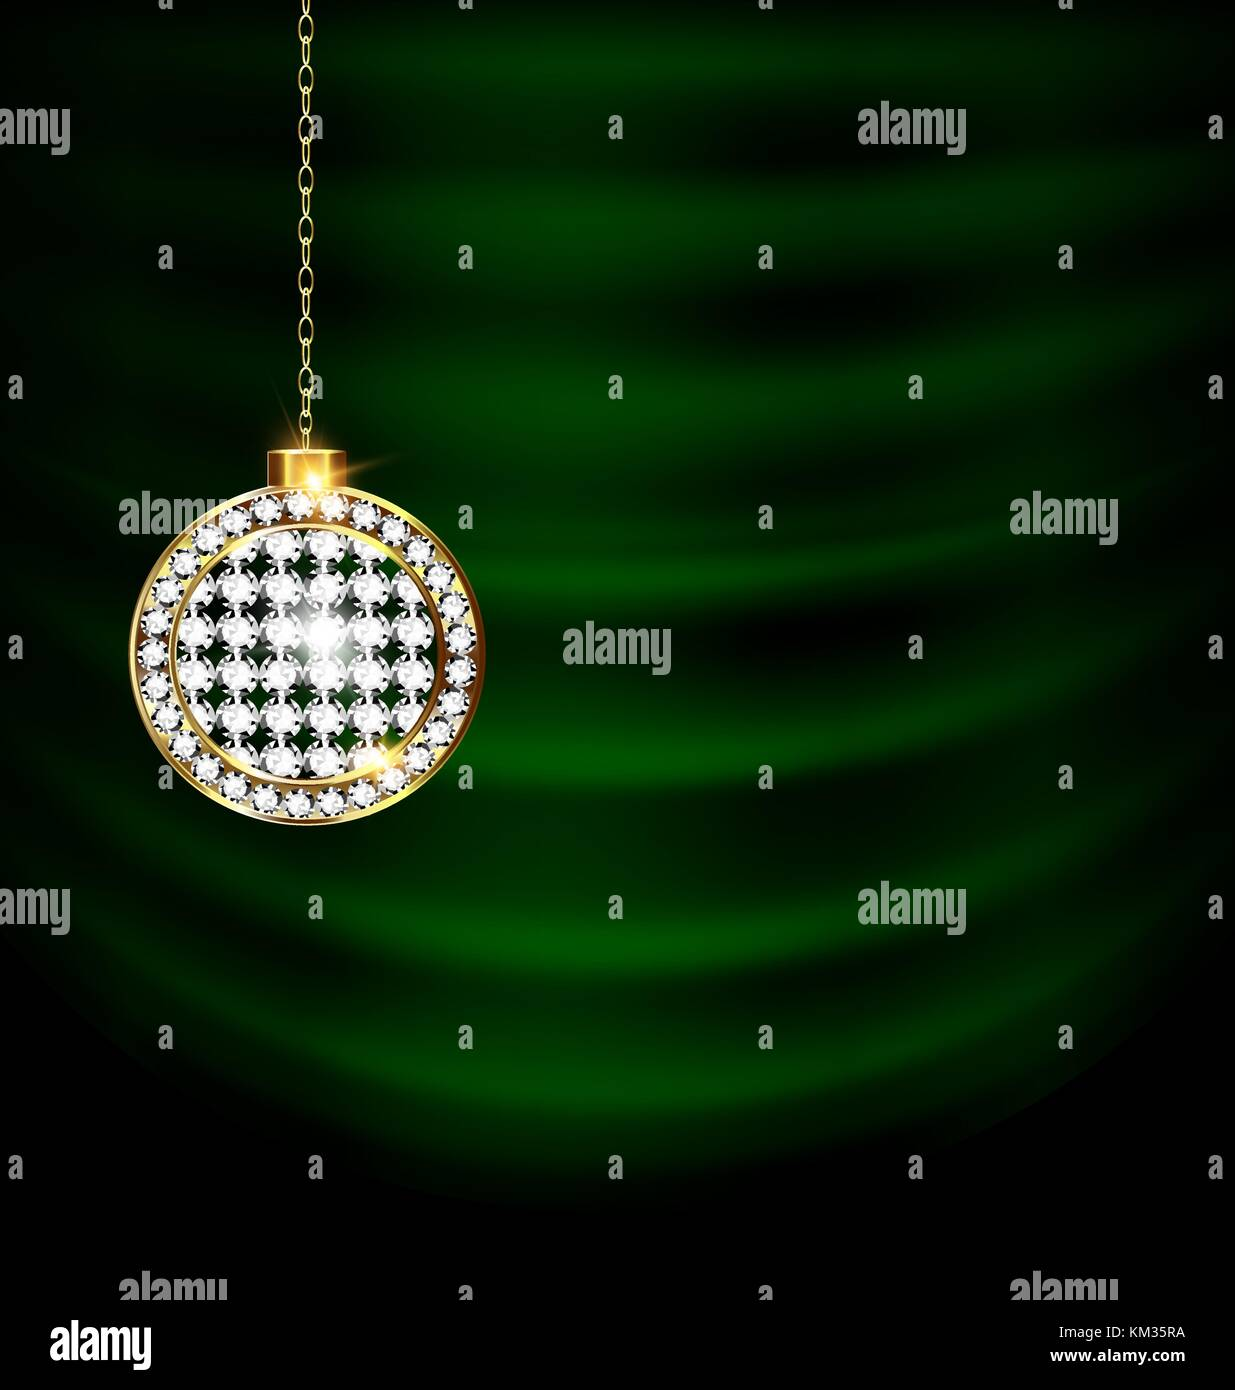 green drape with jewelry Christmas ball - Stock Vector